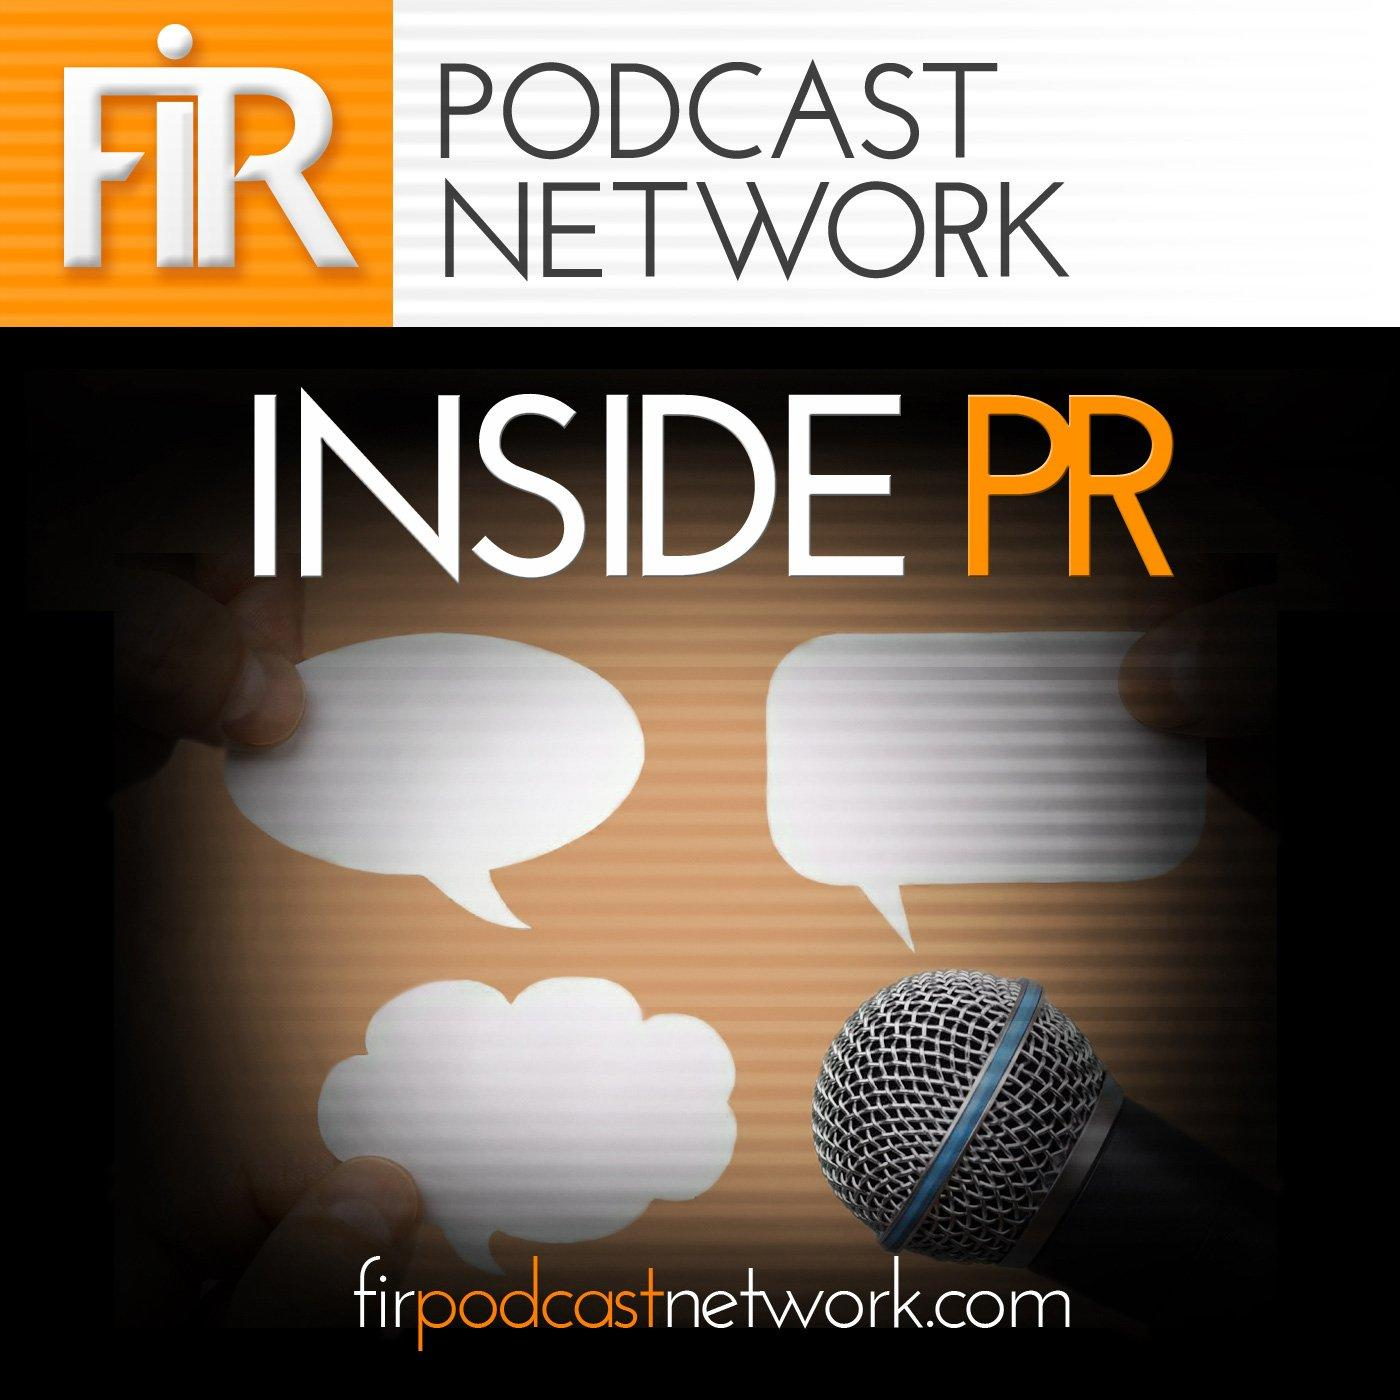 Inside PR 464: Is the news media too weakened to do its job?